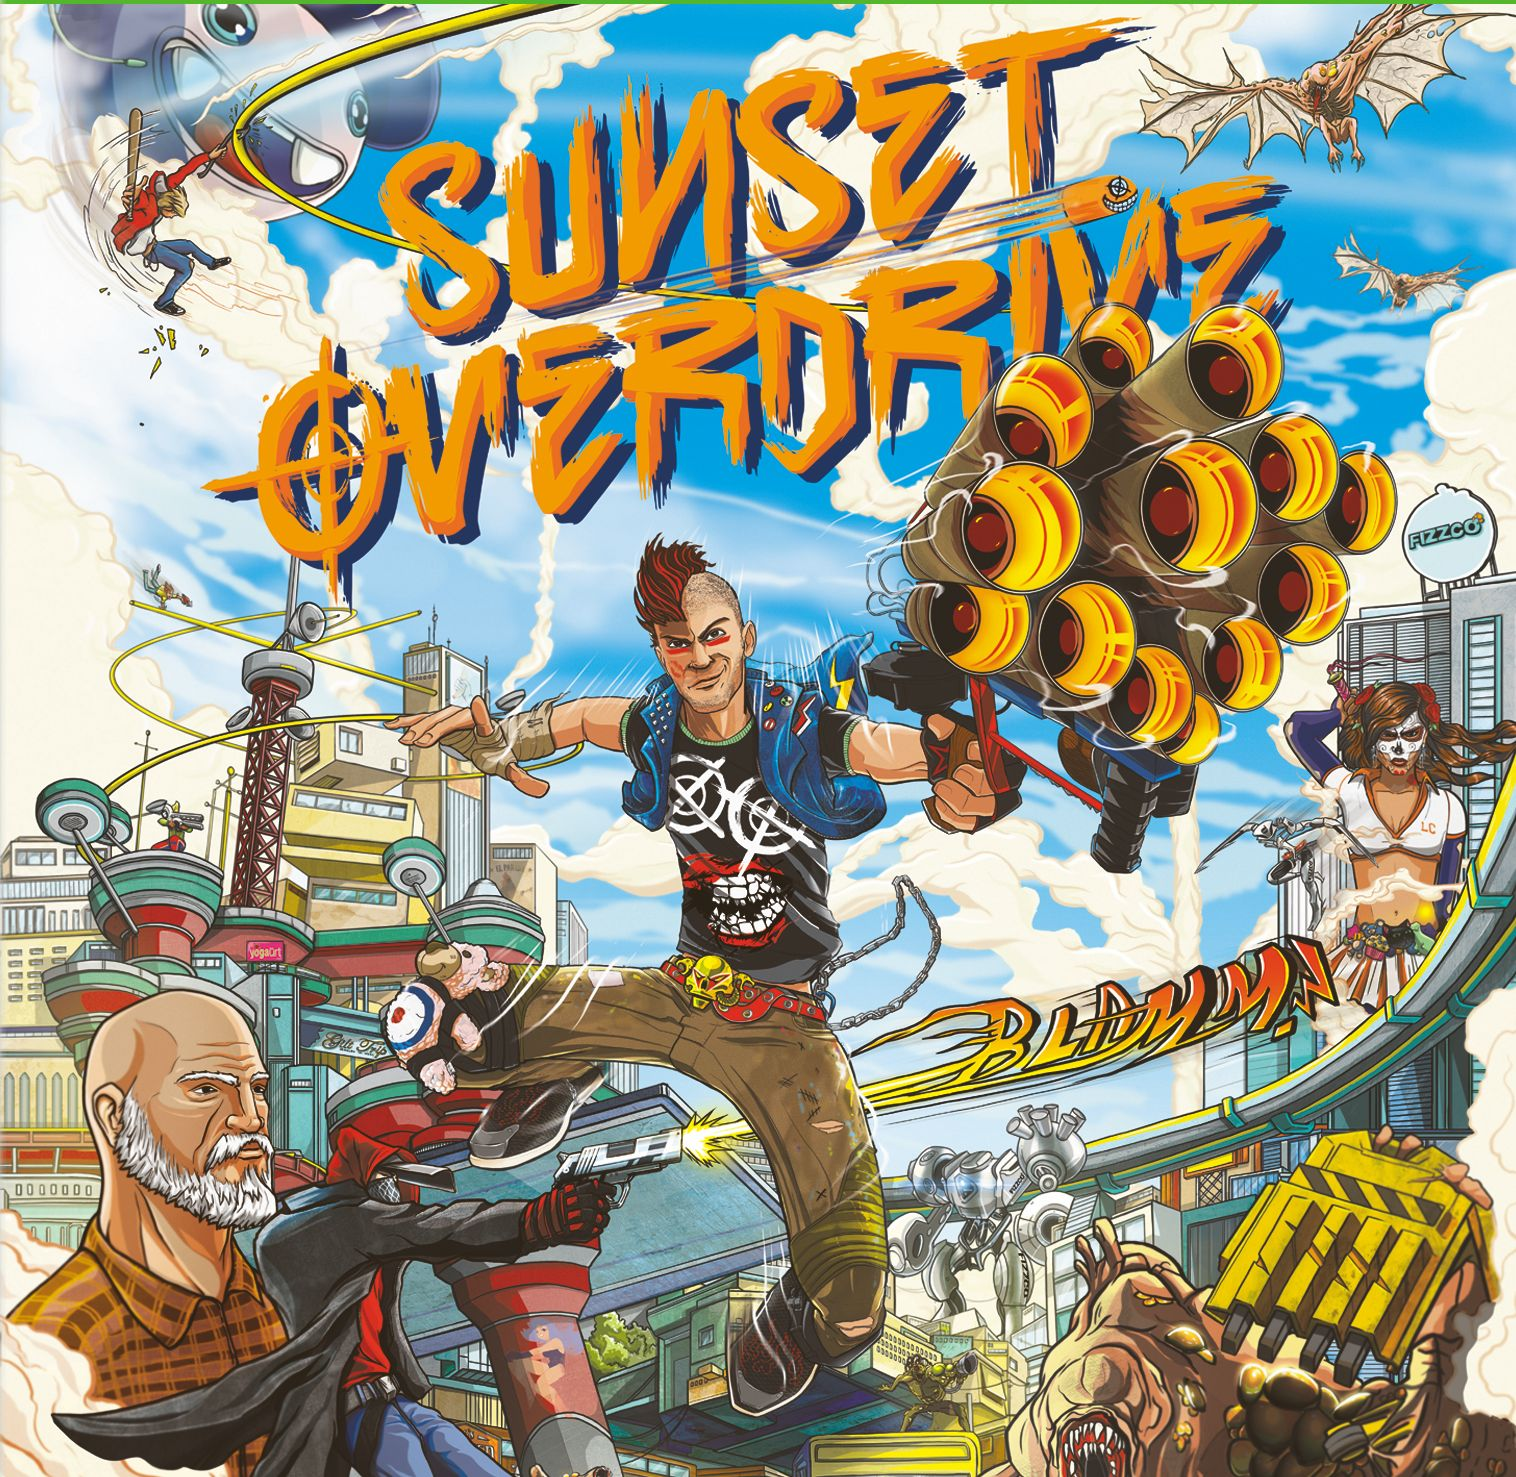 Sunset Overdrive on Xbox One: Everything you need to know about the game